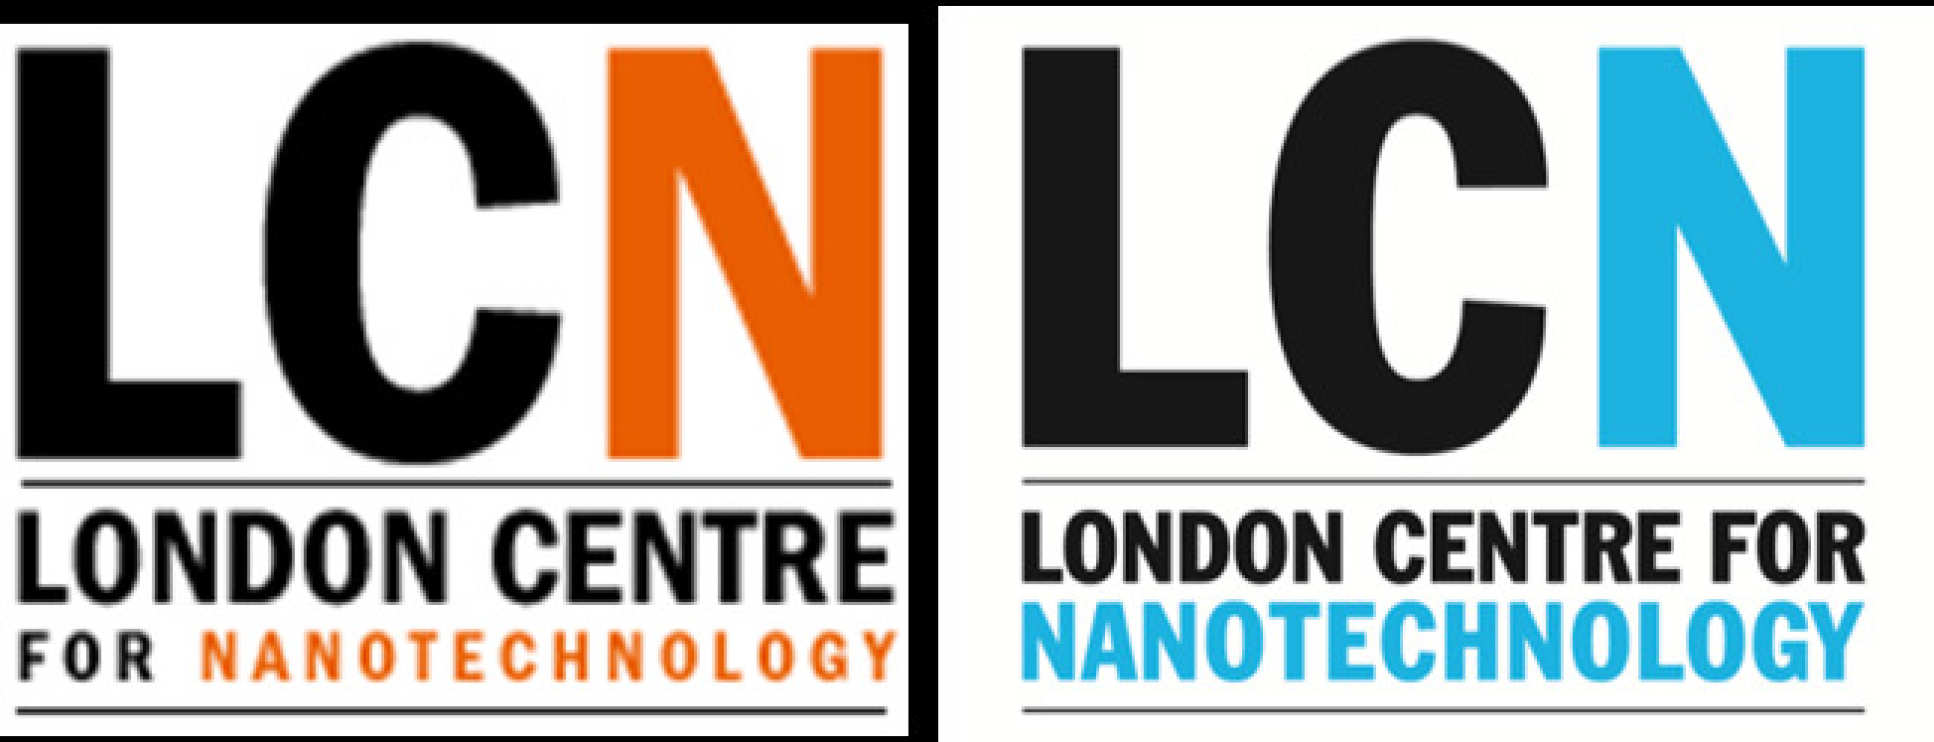 Evolution of the LCN logo, from the original design (left) to the current one (right), officially unveiled in 2011. Notice the change in colour and word distribution in the bottom banner.